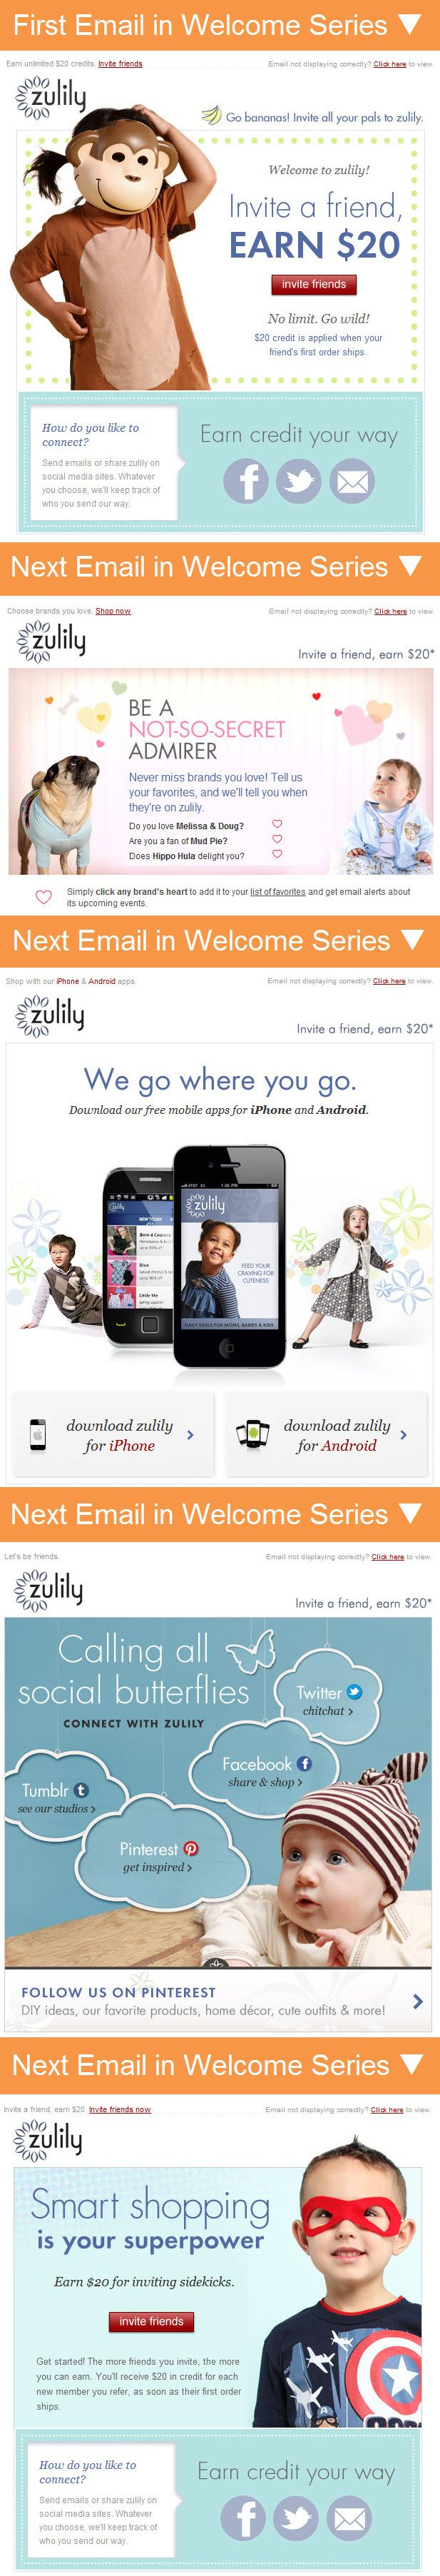 Zulily's 5-email welcome series begins and ends with the retailer trying to get referrals from the new subscriber